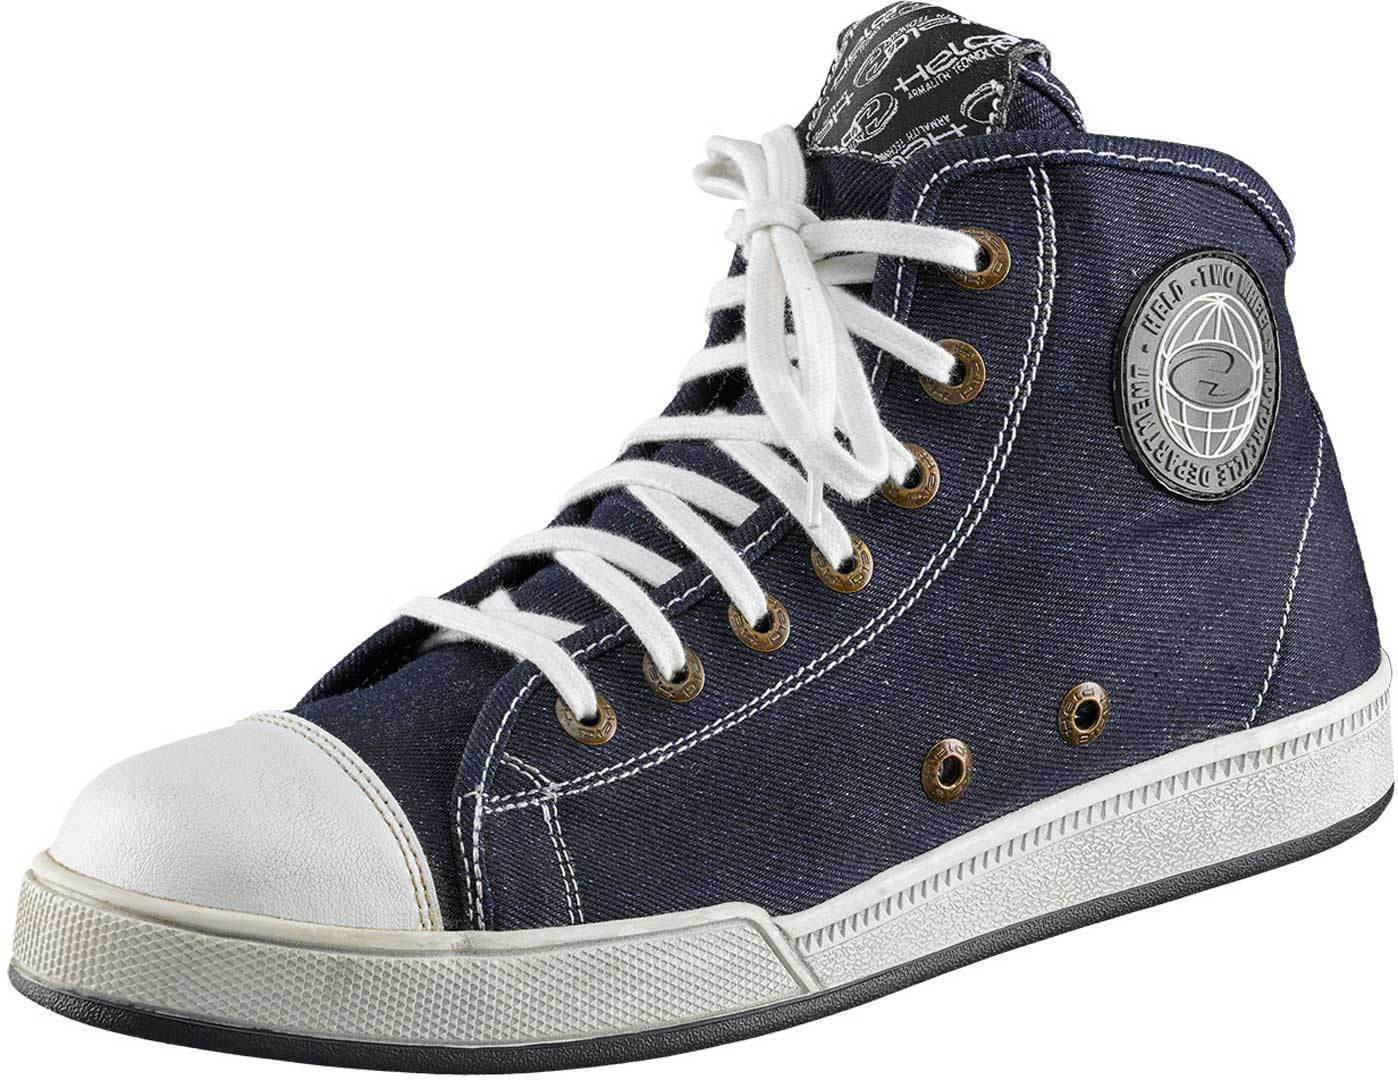 Held Terence Motorcycle Shoes Blue 40